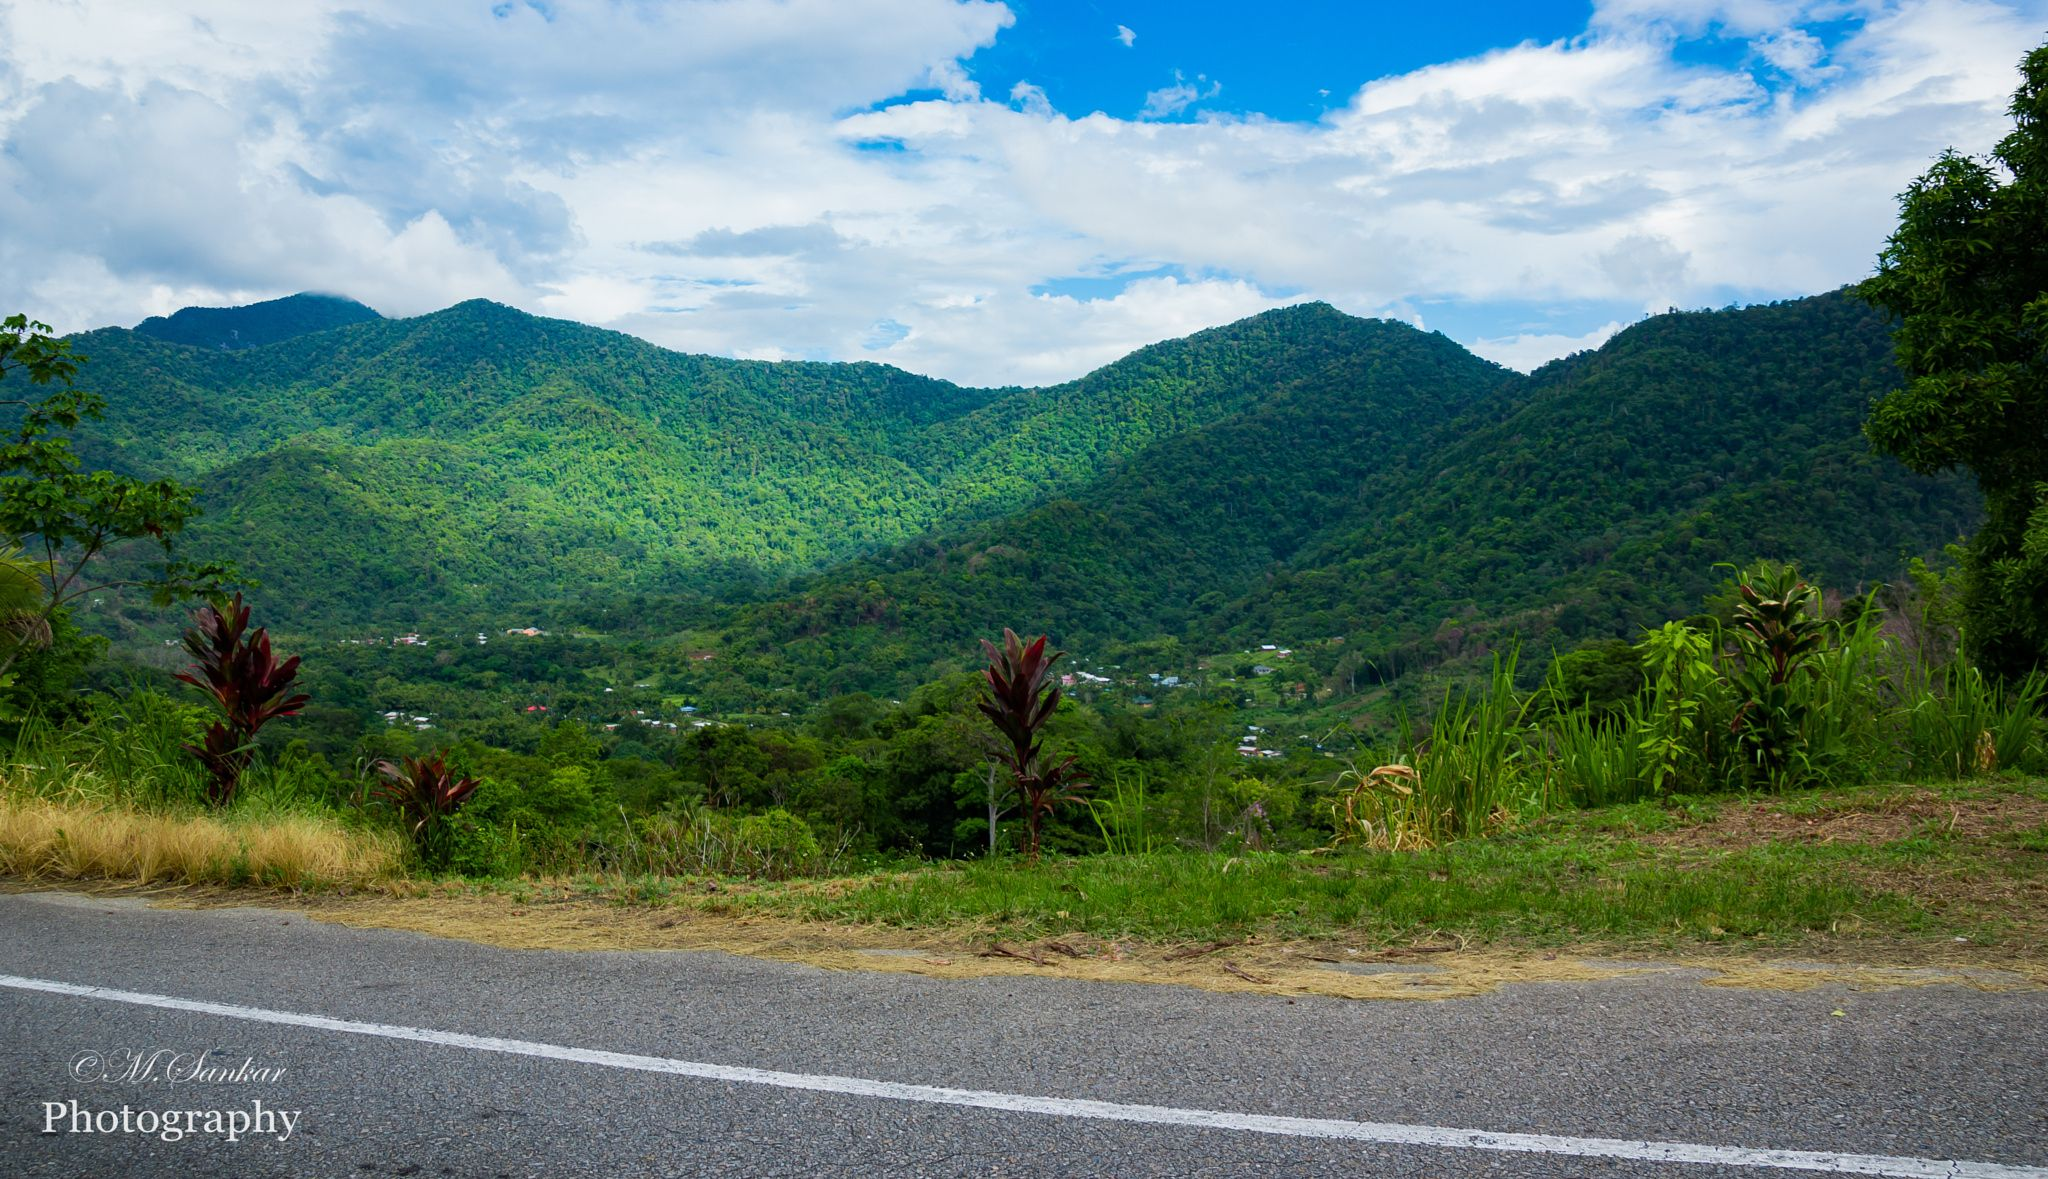 Hills of T&T - I grabbed this shot while we drove up to the beautiful Maracas Bay of Trinidad and Tobago!